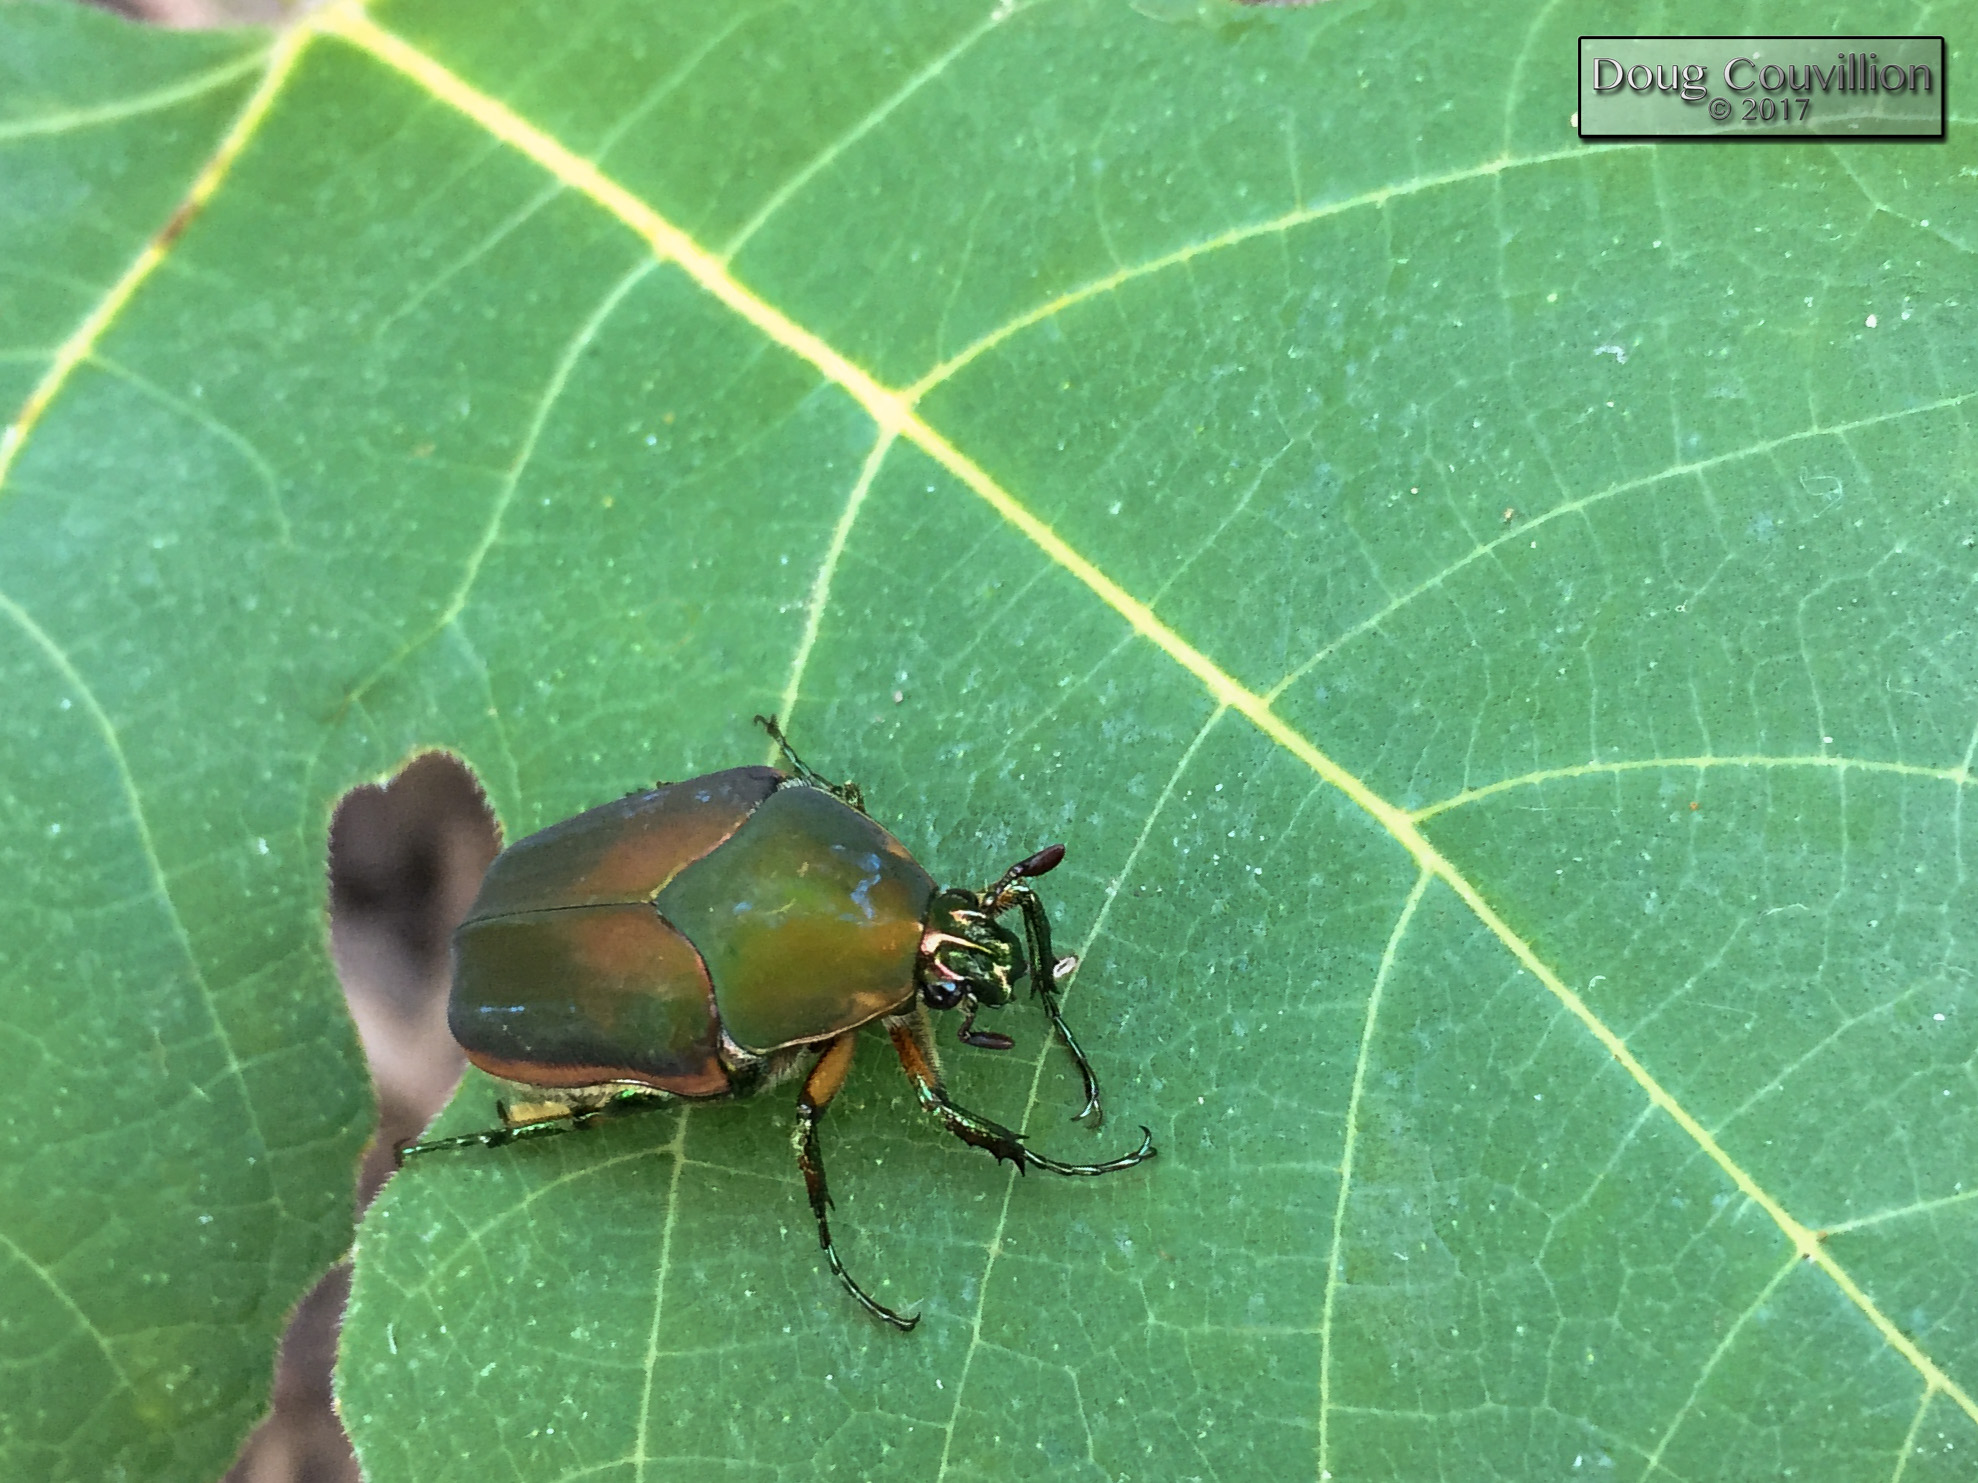 photograph of a Green June Beetle by Doug Couvillion